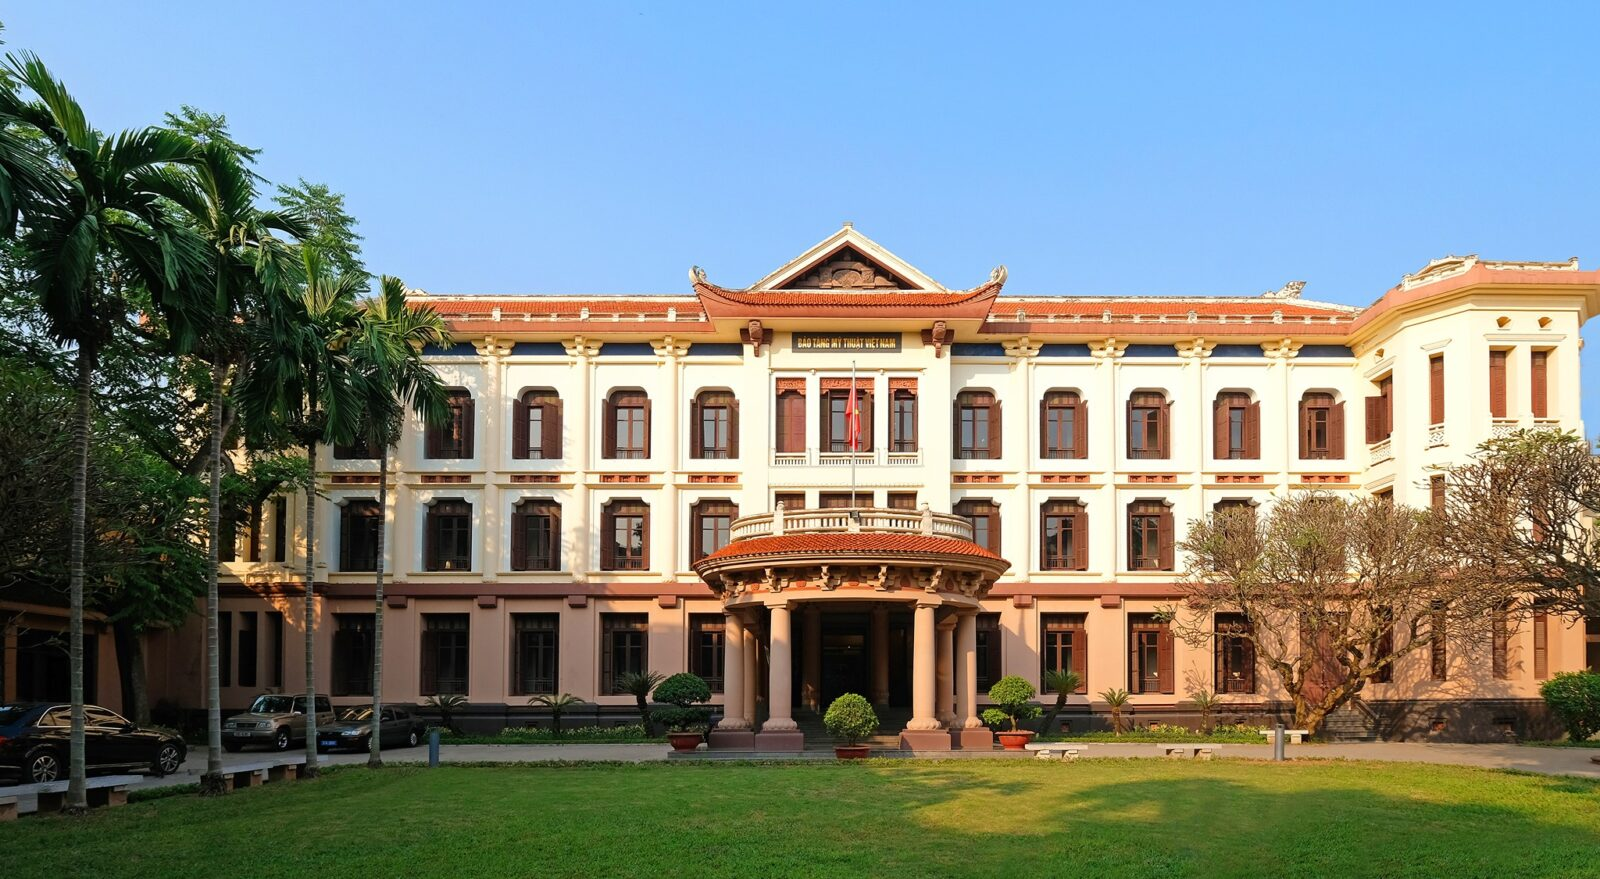 Image of the outside of the Vietnam National Fine Art Museum in Hanoi